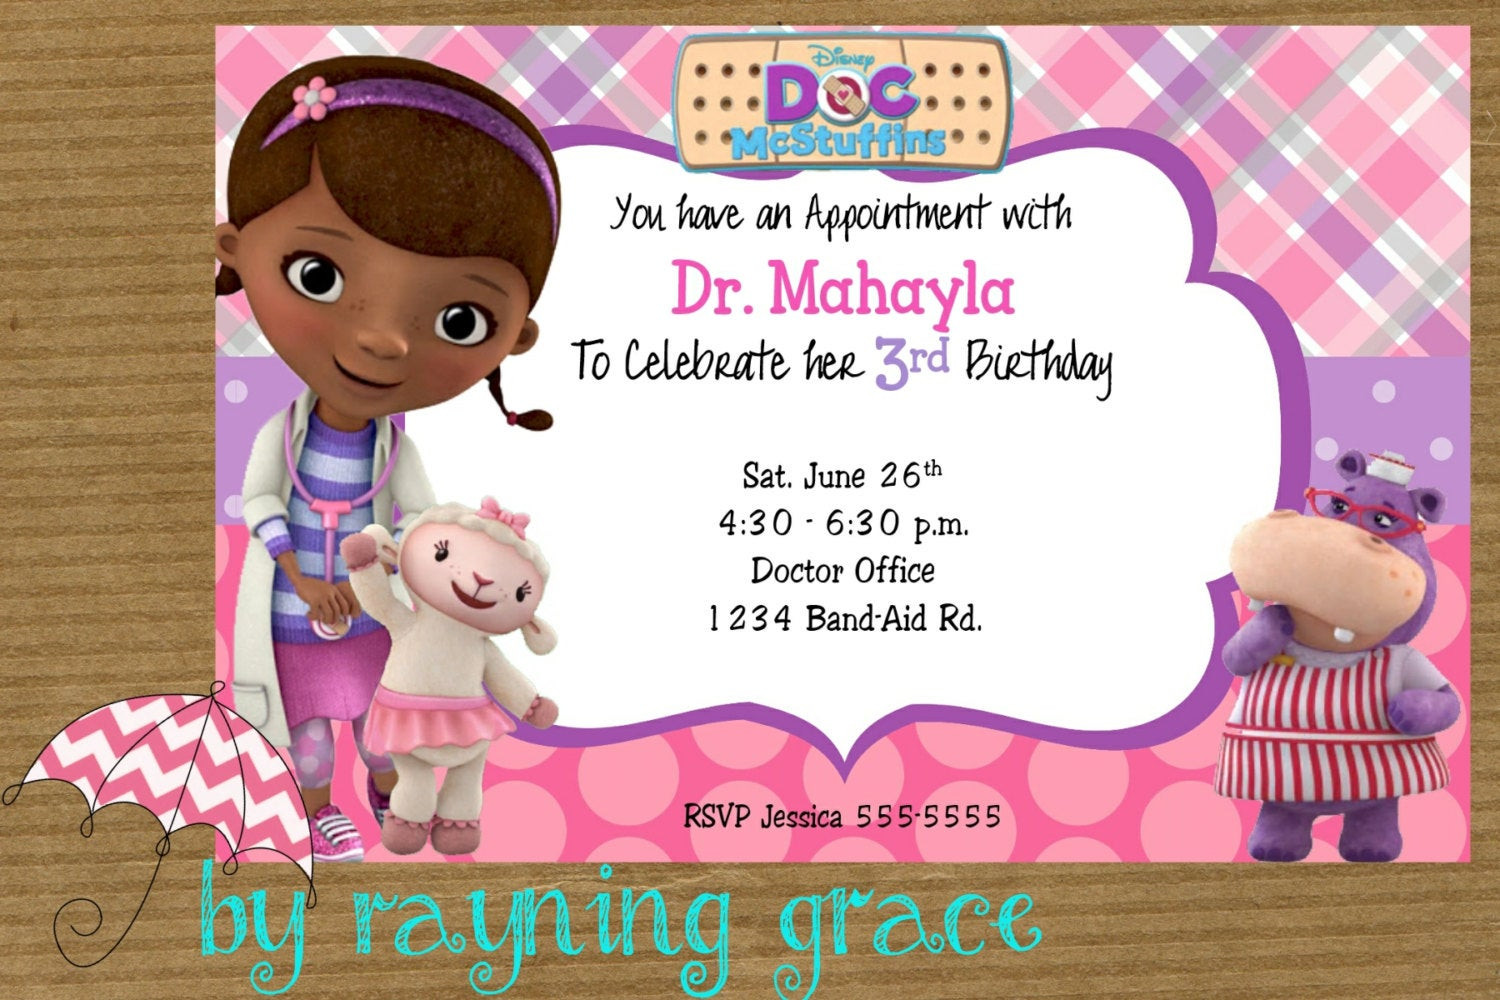 Best ideas about Doc Mcstuffins Birthday Invitations . Save or Pin Disney Doc McStuffins Birthday Party Invitations Now.